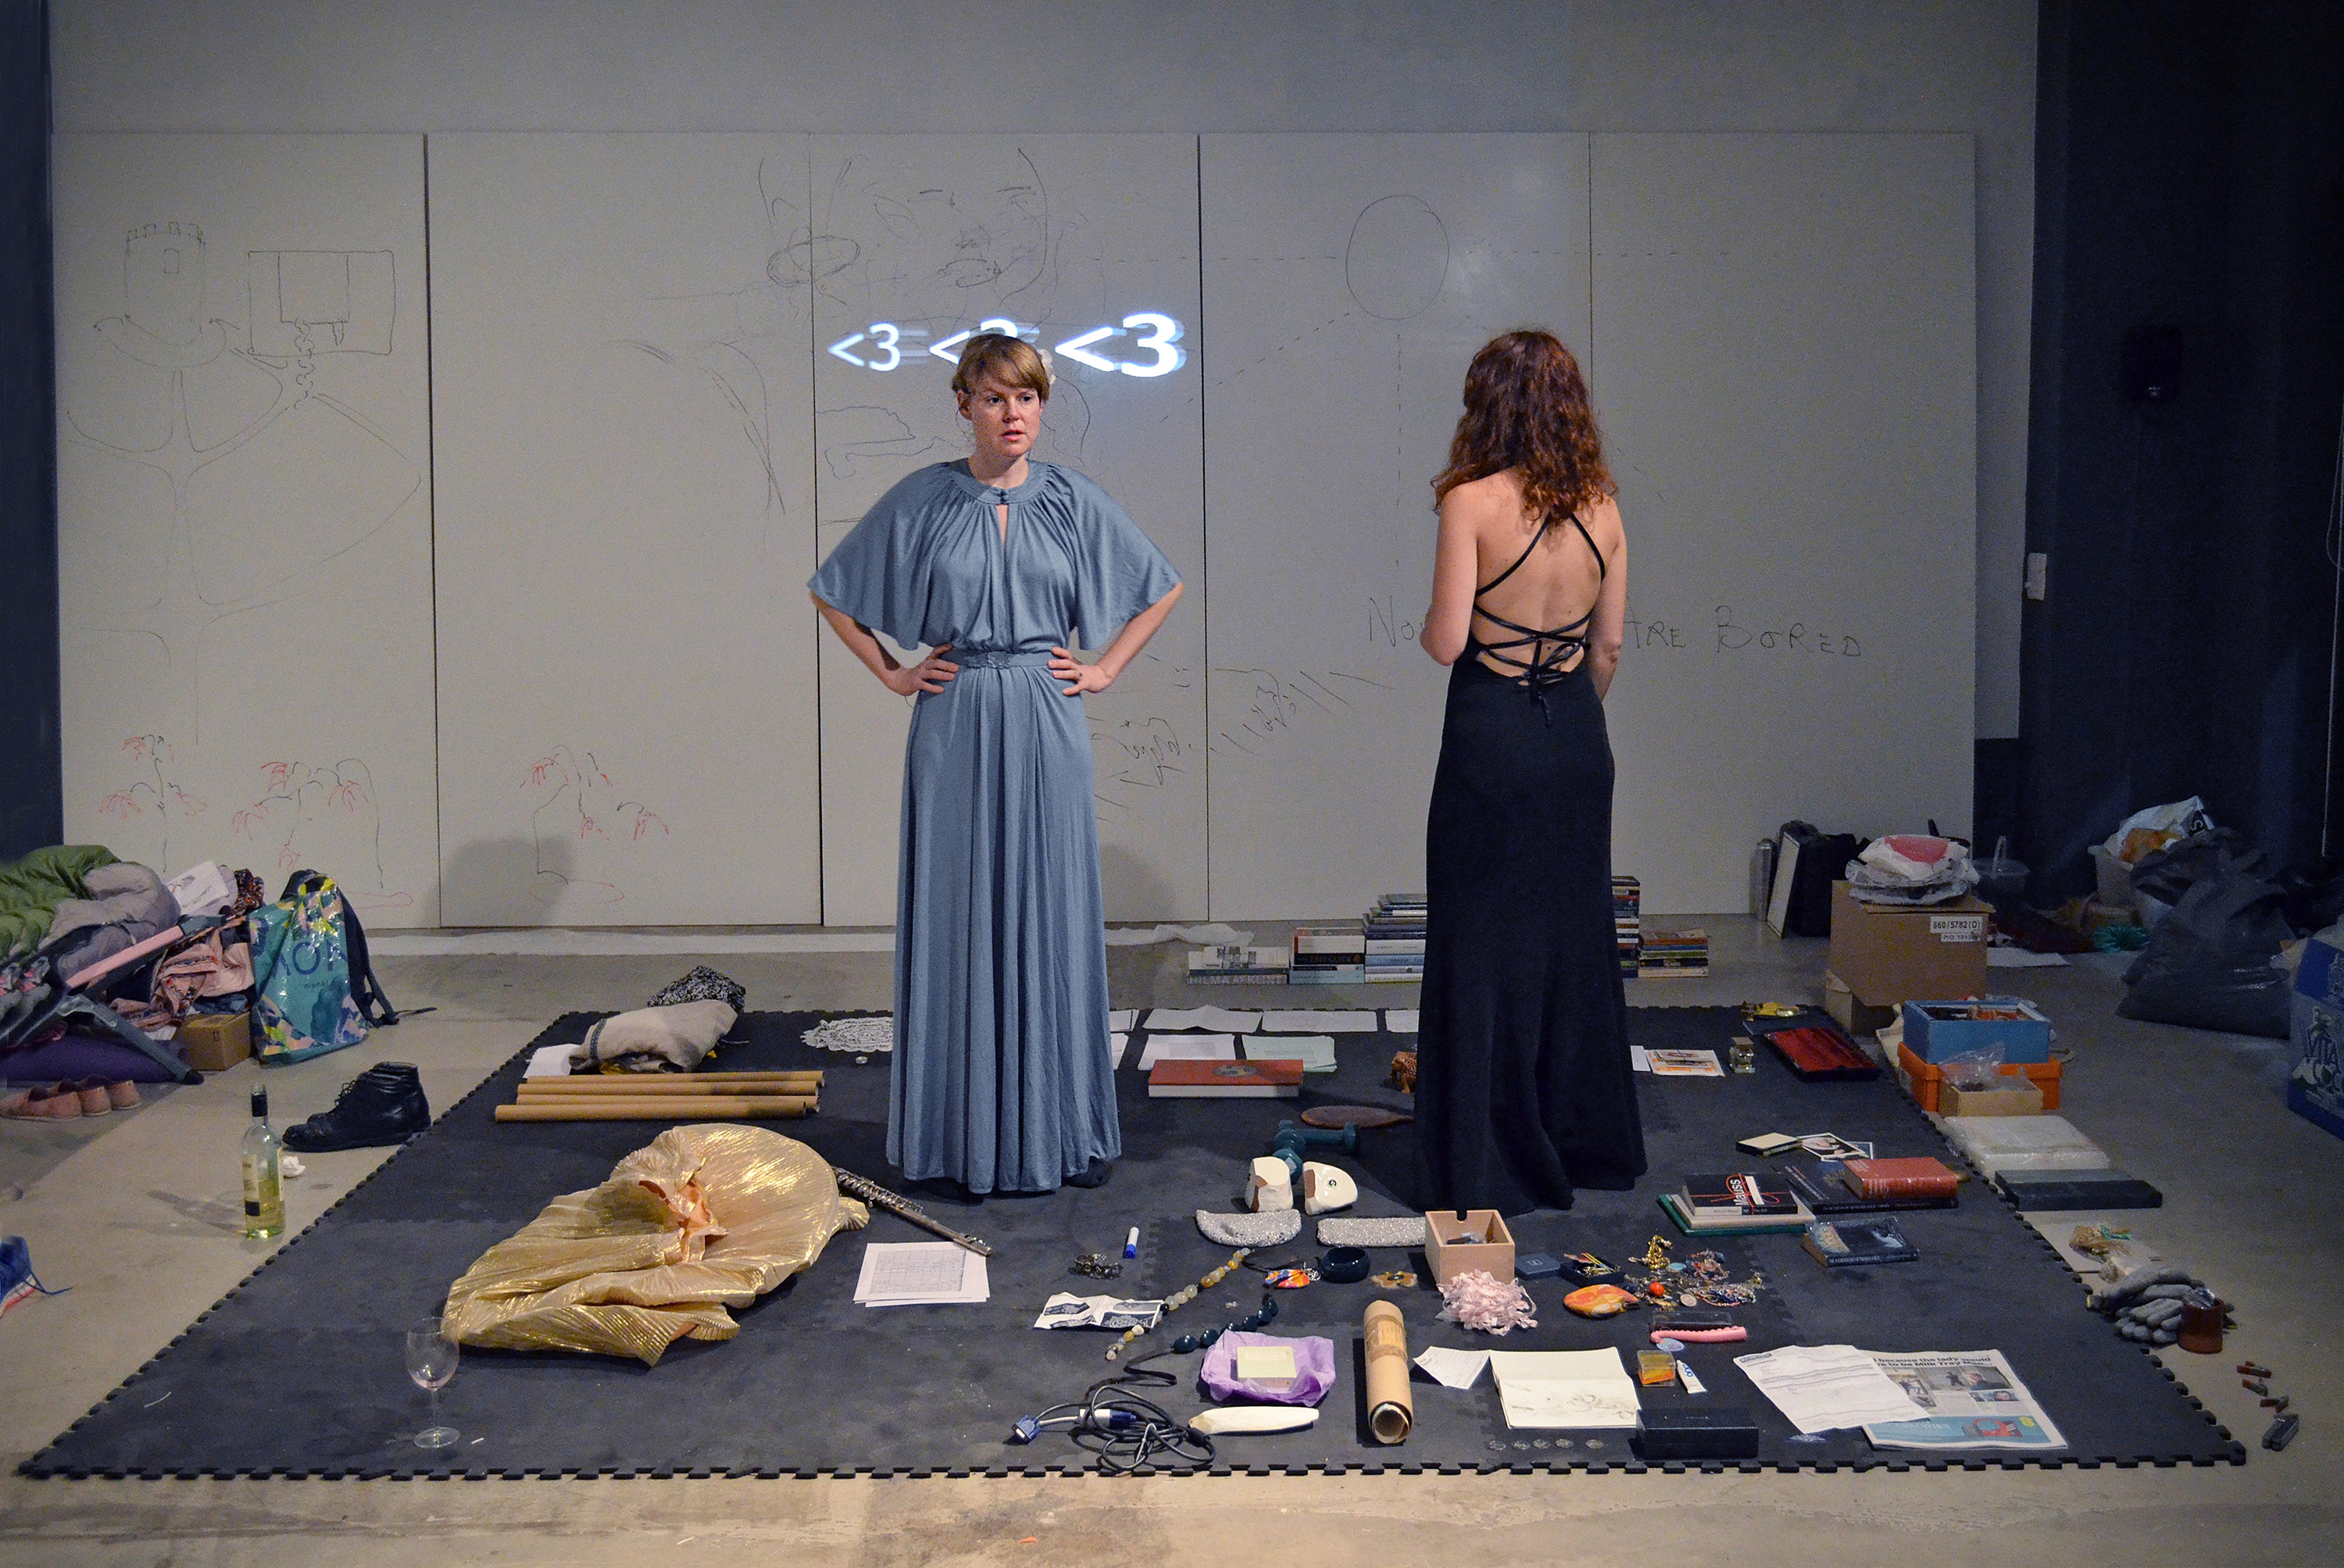 'Bain Marie', Laura Morrison and Beatrice Loft Schulz, 2015. Photo courtesy of the artists